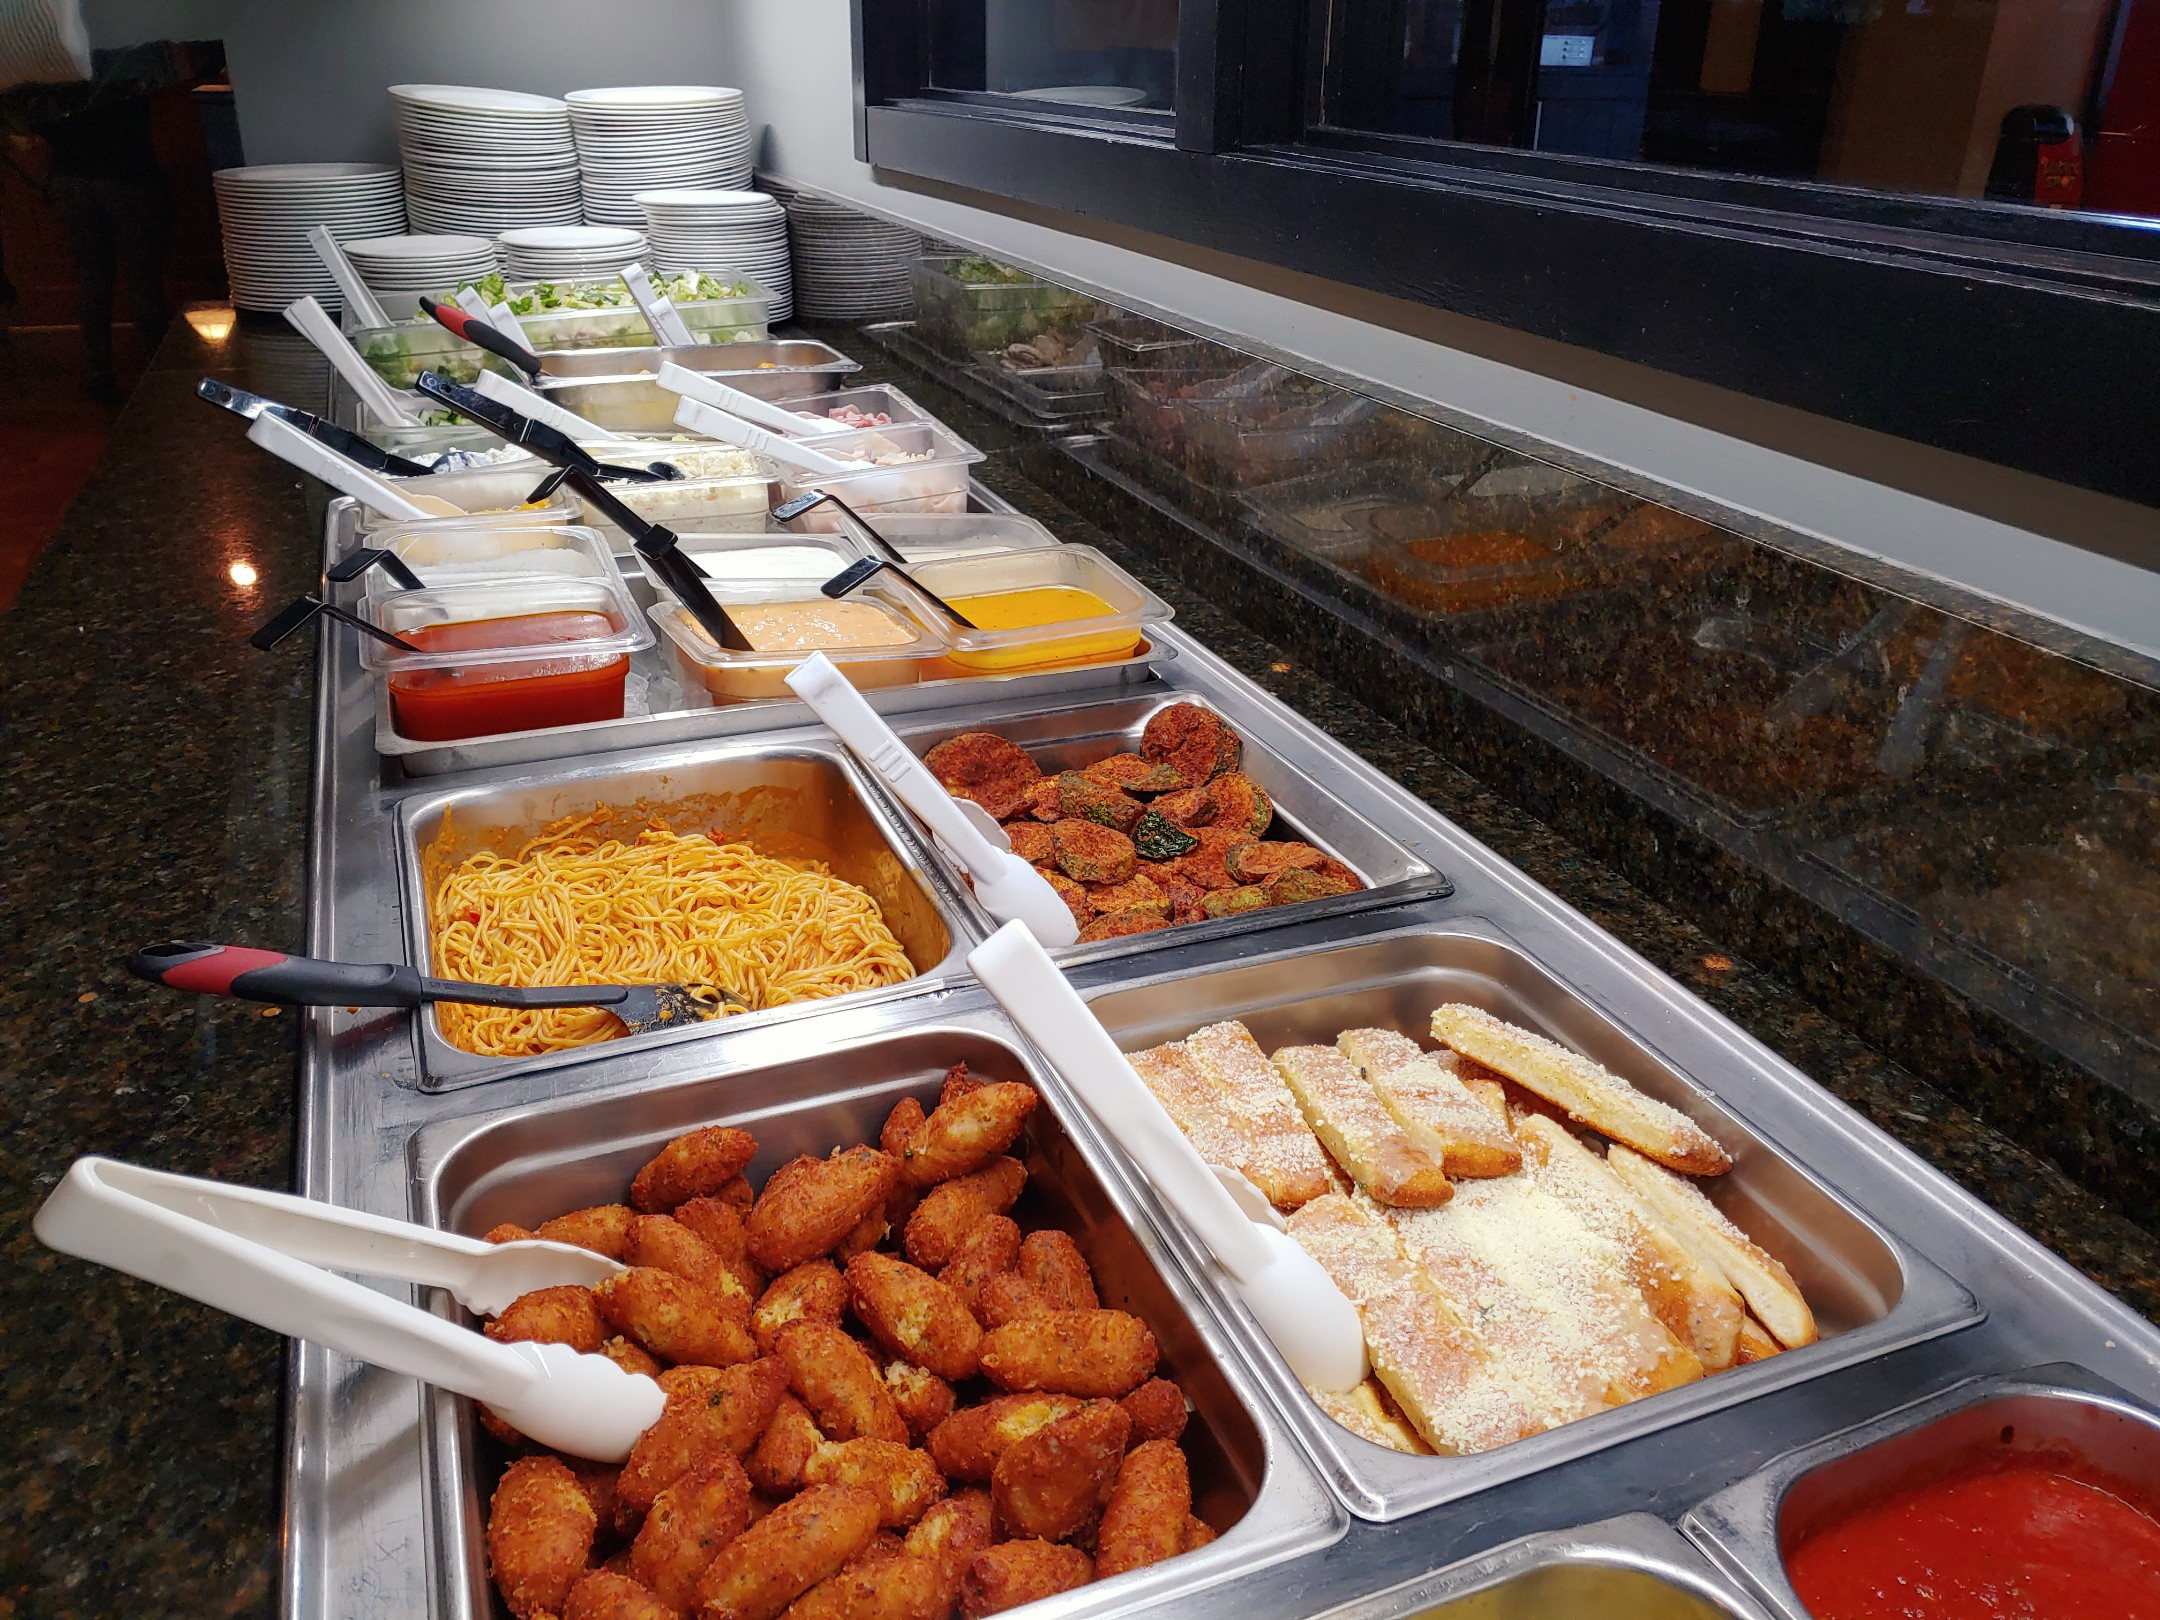 Catering & Banquet Services in Grand Rapids